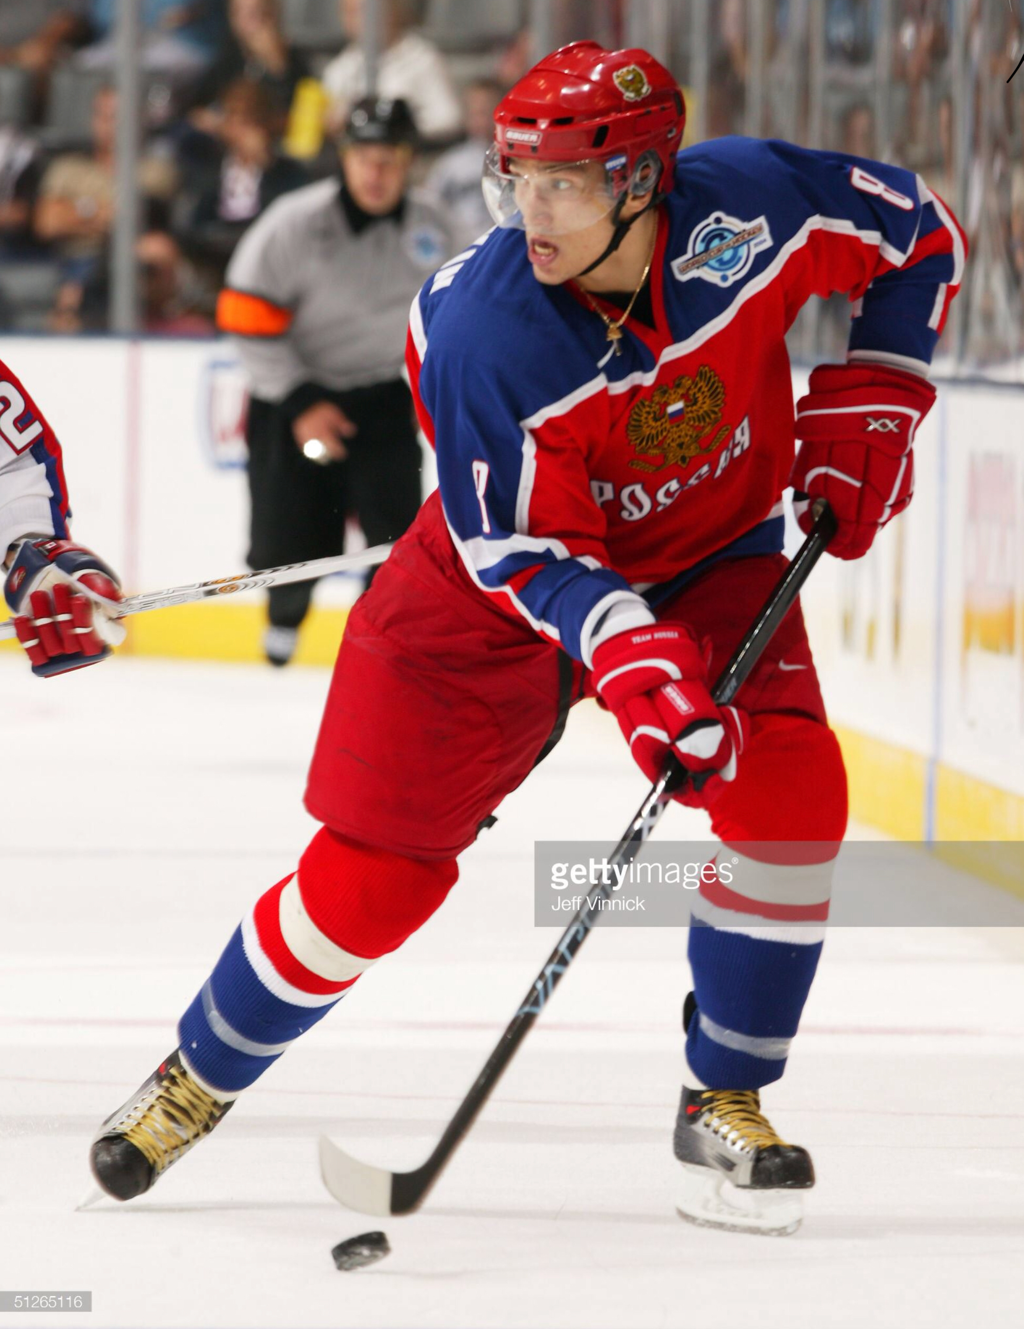 best loved f9ae8 94ff7 Alexander Ovechkin - Team Russia World Cup of Hockey 2004 ...